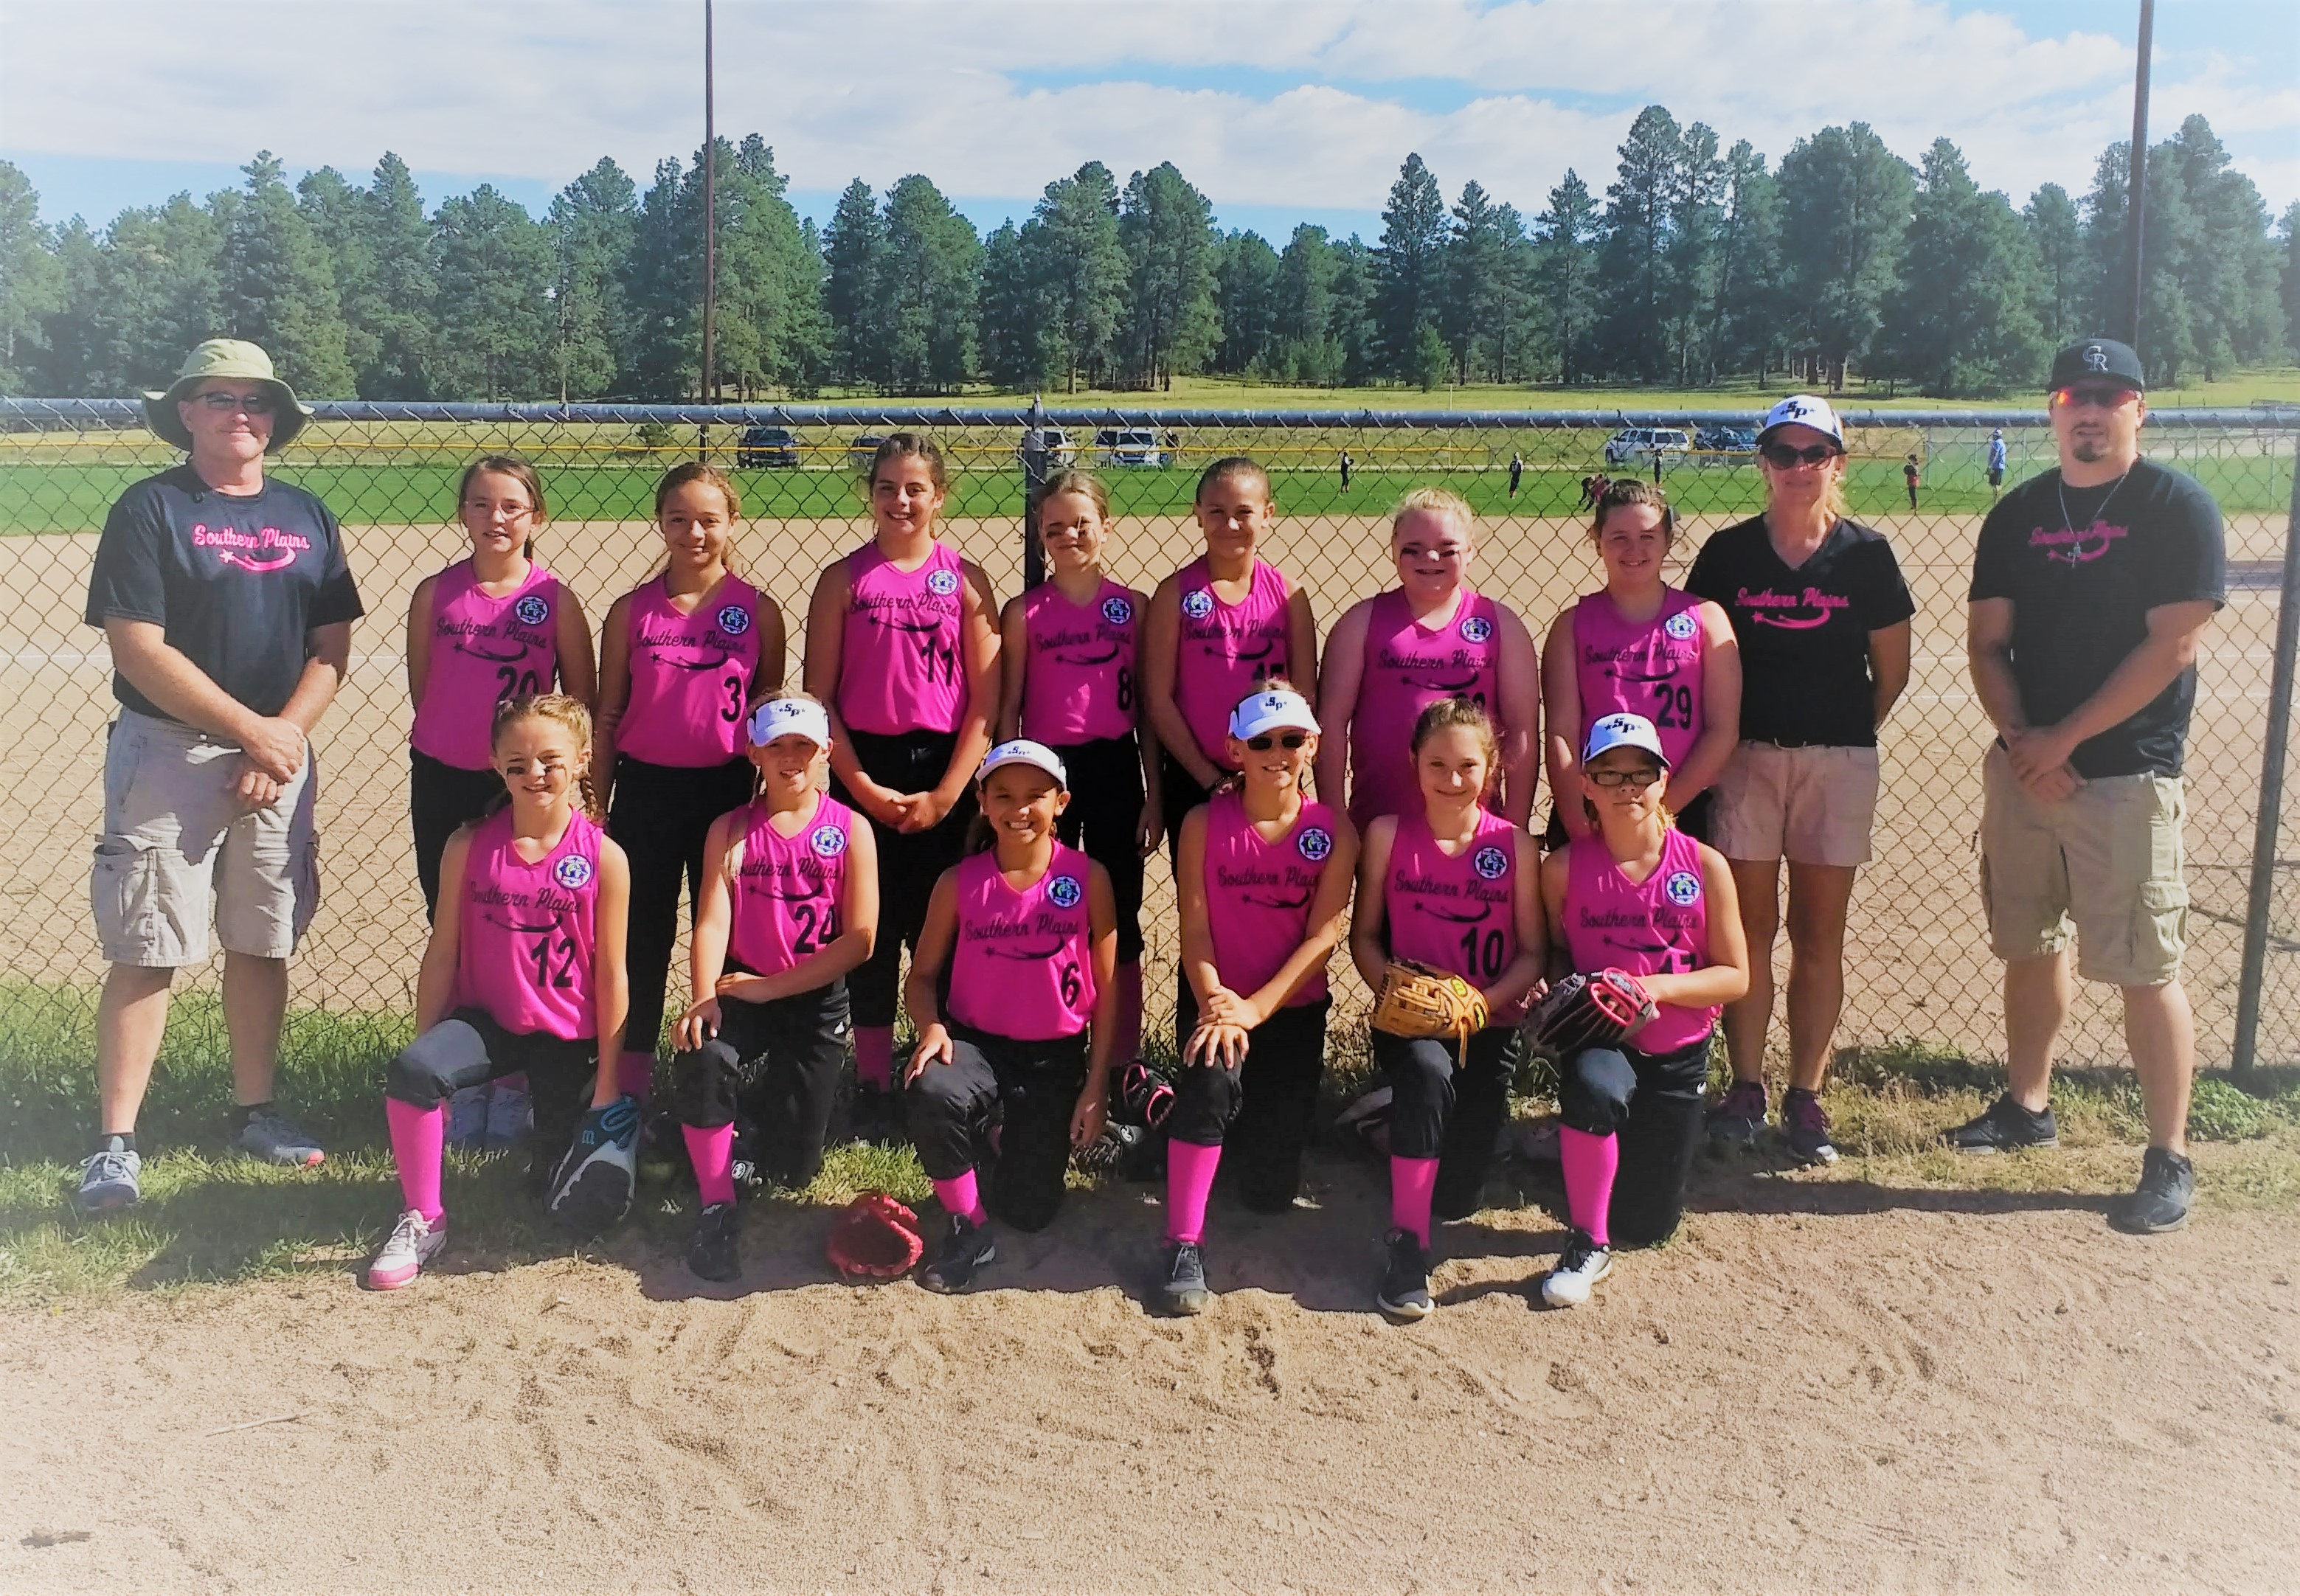 10U SOUTHERN PLAINS ALL-STAR team placed in the runner-up position at the 10U Babe Ruth Tournament in Elizabeth, Colorado over the weekend.  They will now advance to the 10U Midwest Regional Tournament in Harper, Kansas.  (Back row) Coach Scott Gyurman, Lexi Holdren, Aureonna Diaz, Evan Scheimer, Serenity Worley, Millie Giron, Tailee Johnson, Kennedy Gyurman, Coach Polly Gyurman, Coach Mike Lozano (front row) Bailey Sierra, Savanna Brown, Idaly Rodriguez, Graci Morlan, Aubry Carroll, Zoie Arnold-Kraft (Photo credit: Polly Gyurman)